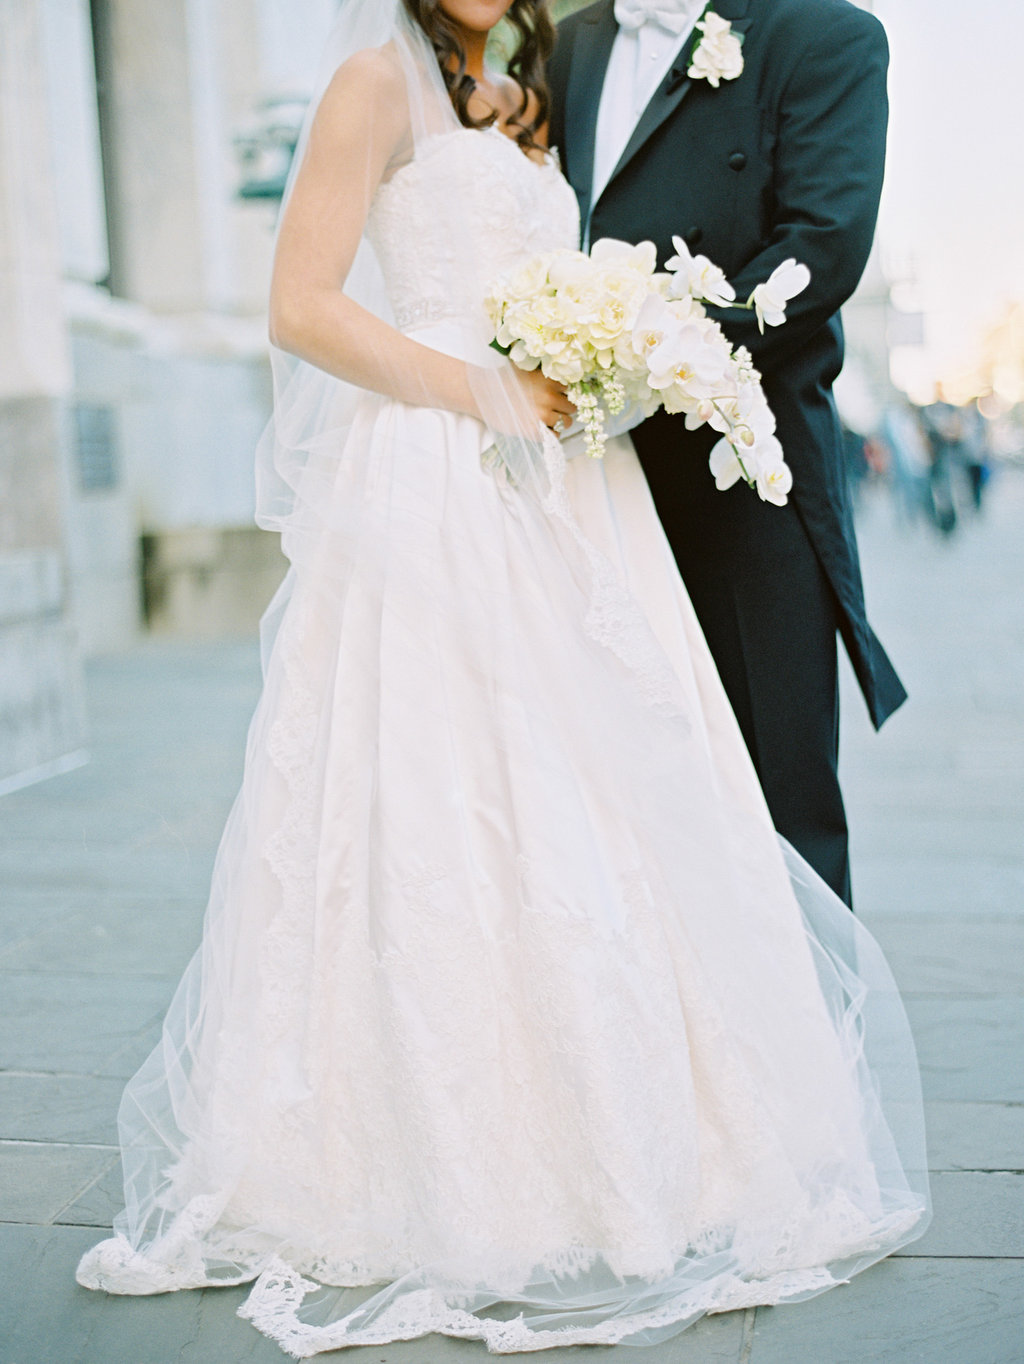 Bride and groom with their orchid bouquet and boutonnière